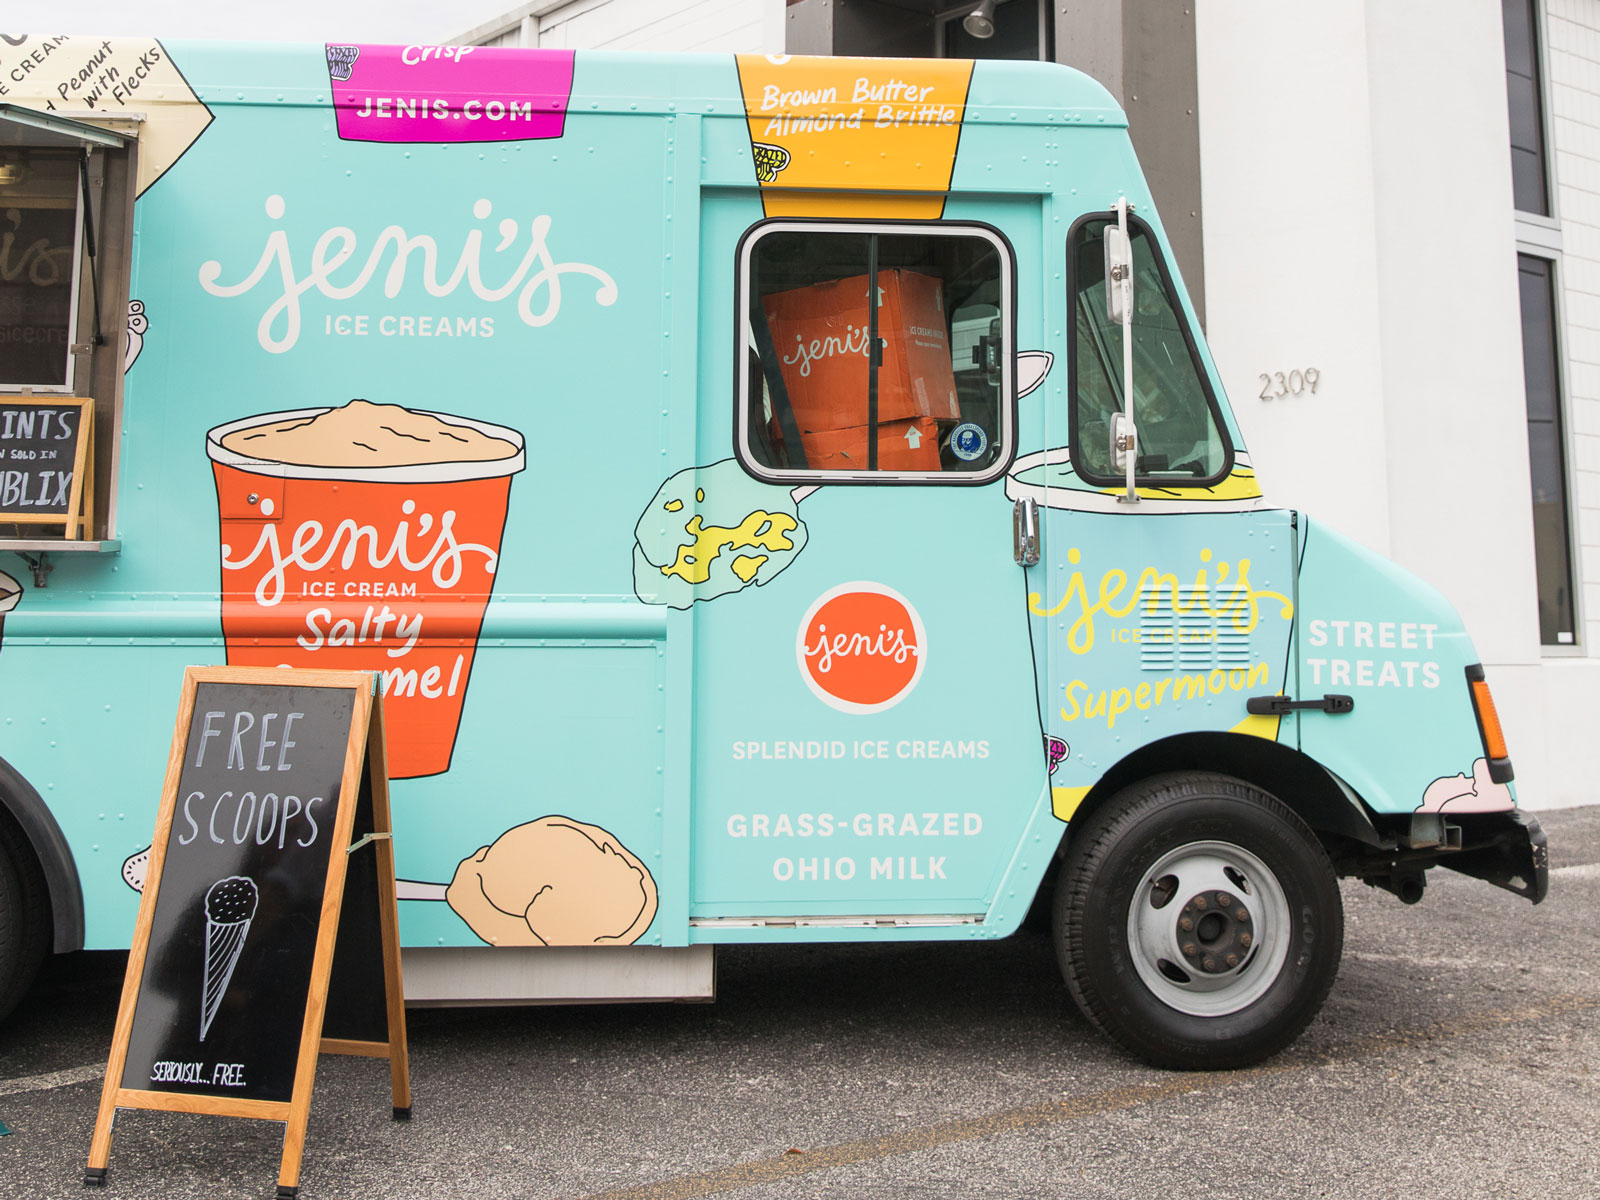 Here's How to Get Free Jeni's Ice Creams This Summer